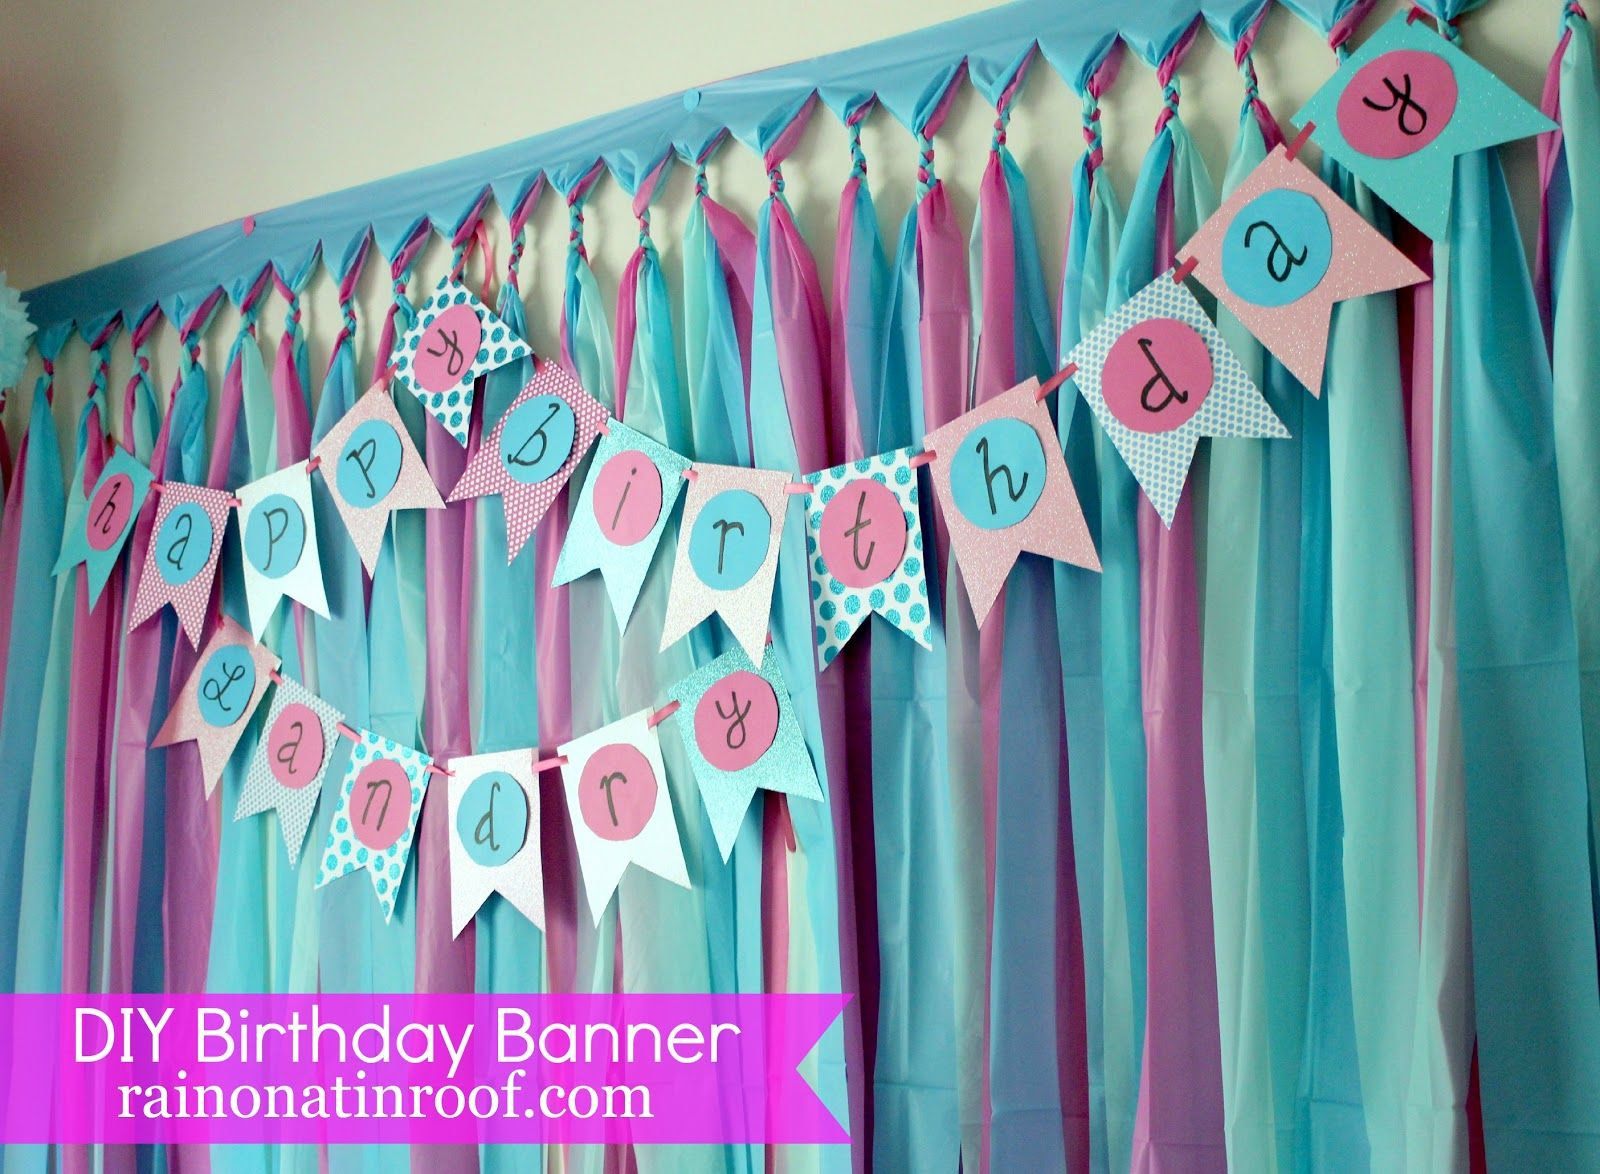 Easiest Ever DIY Birthday Banner Part 2 Parties Birthday party